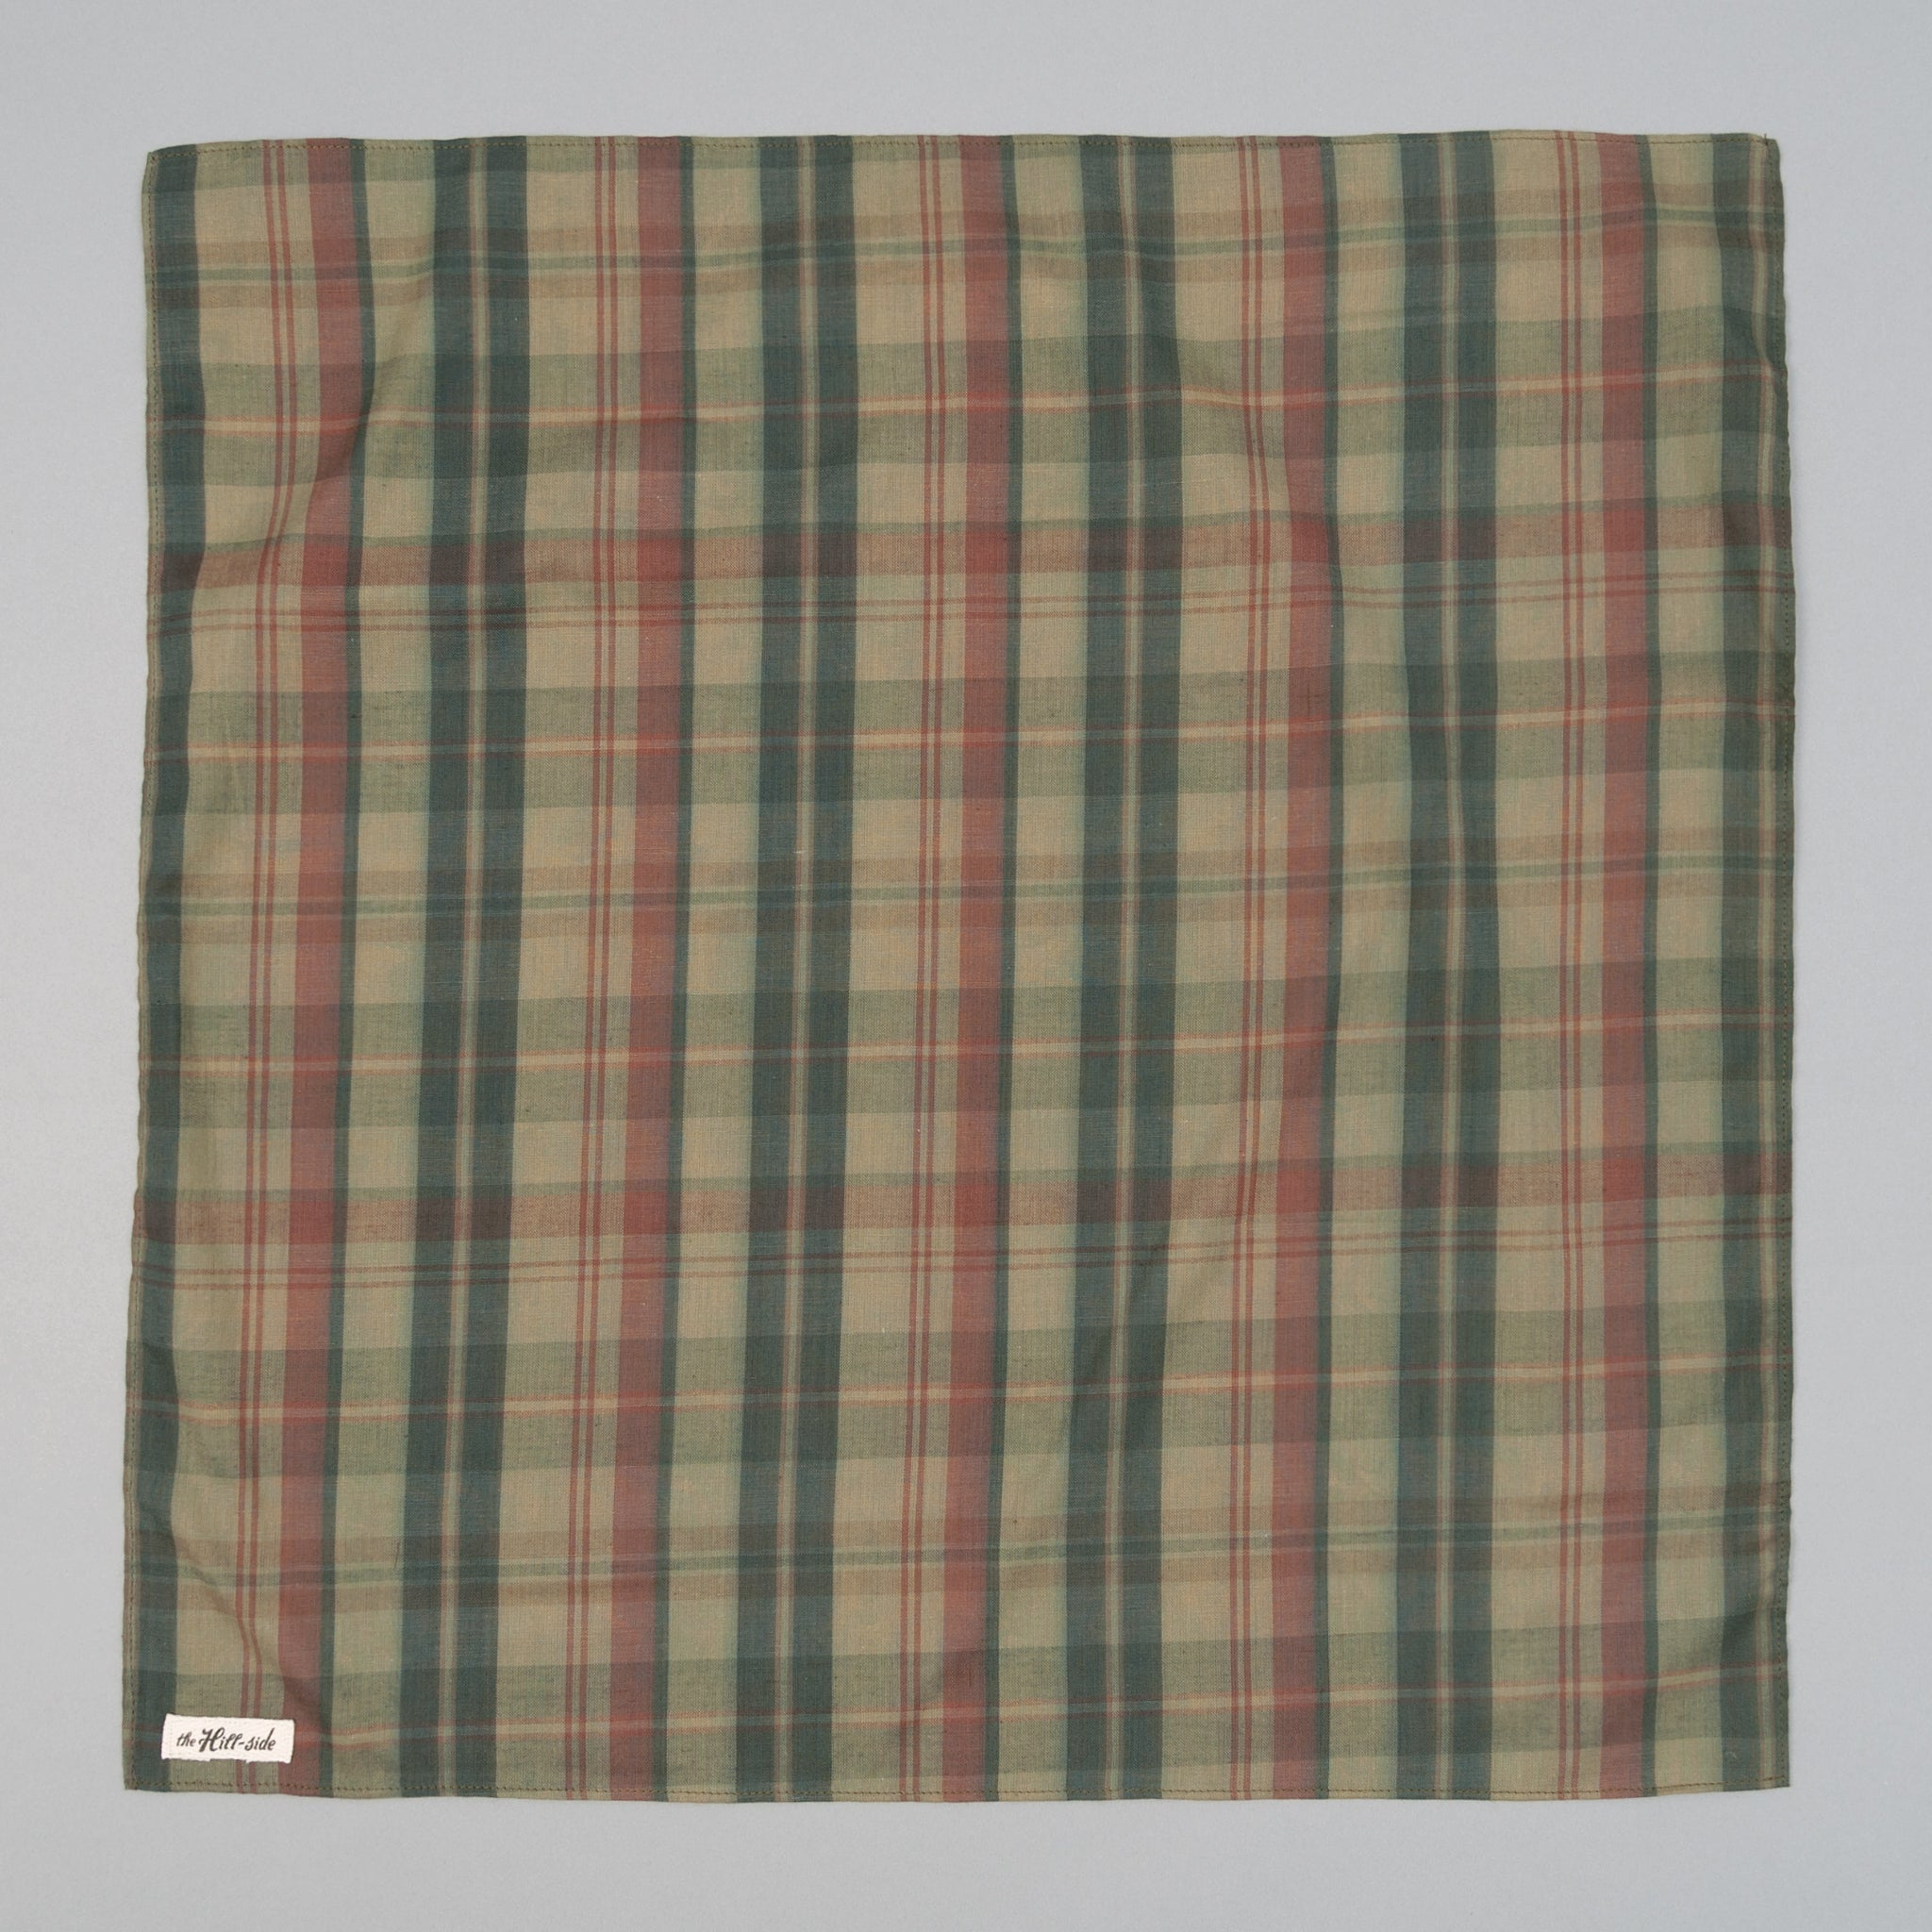 The Hill-Side - OD Indian Madras Bandana, Faded Red / Blue Check - BA1-426 - image 1